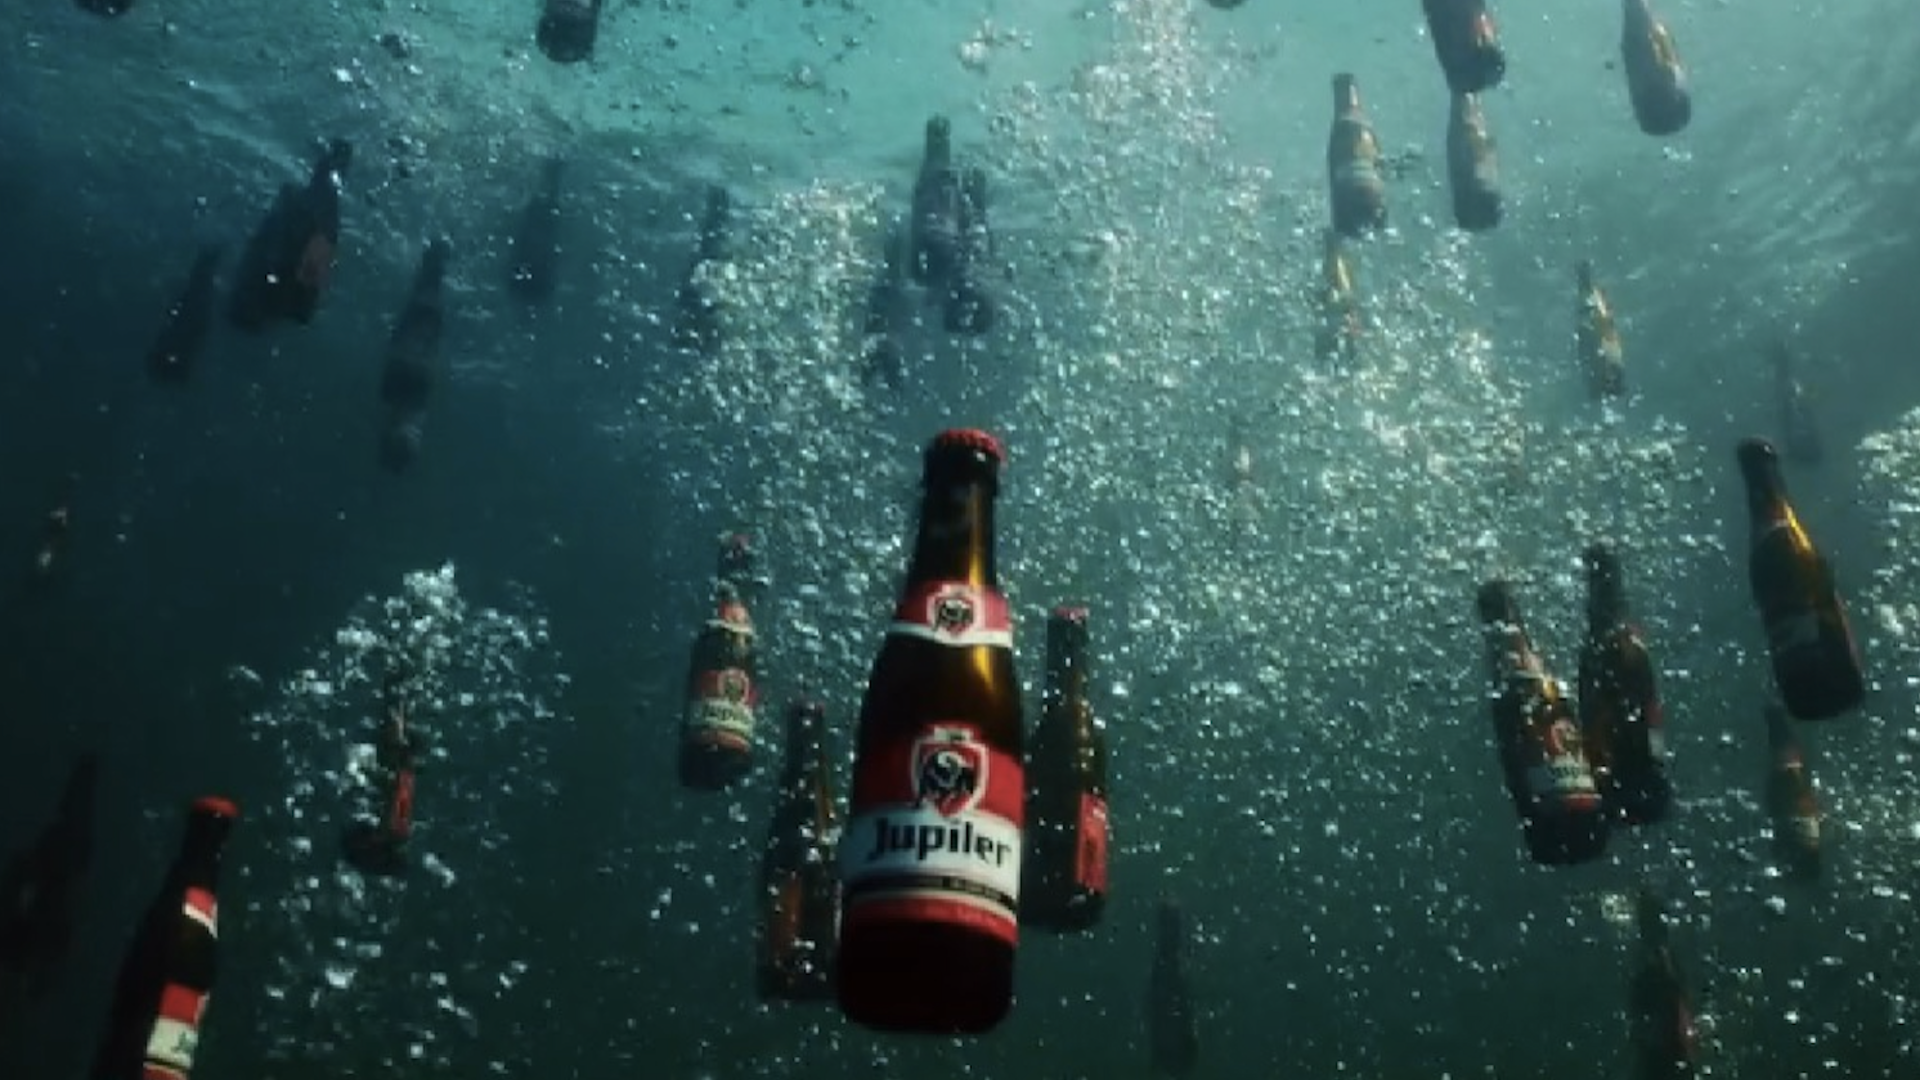 jupiler - container